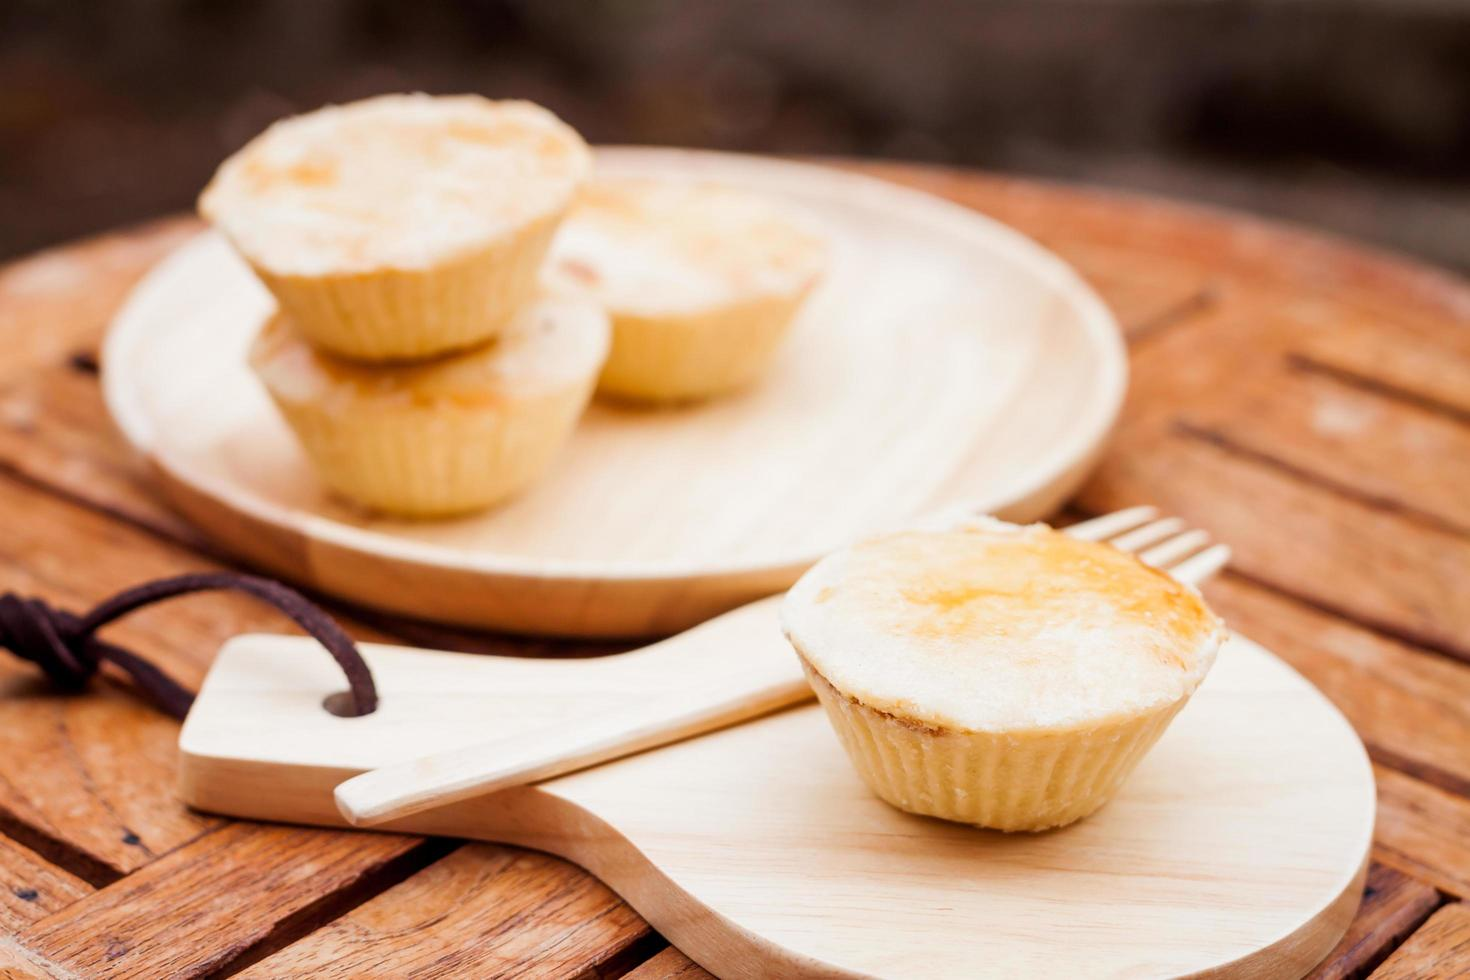 Mini pies on a wooden plate and tray photo